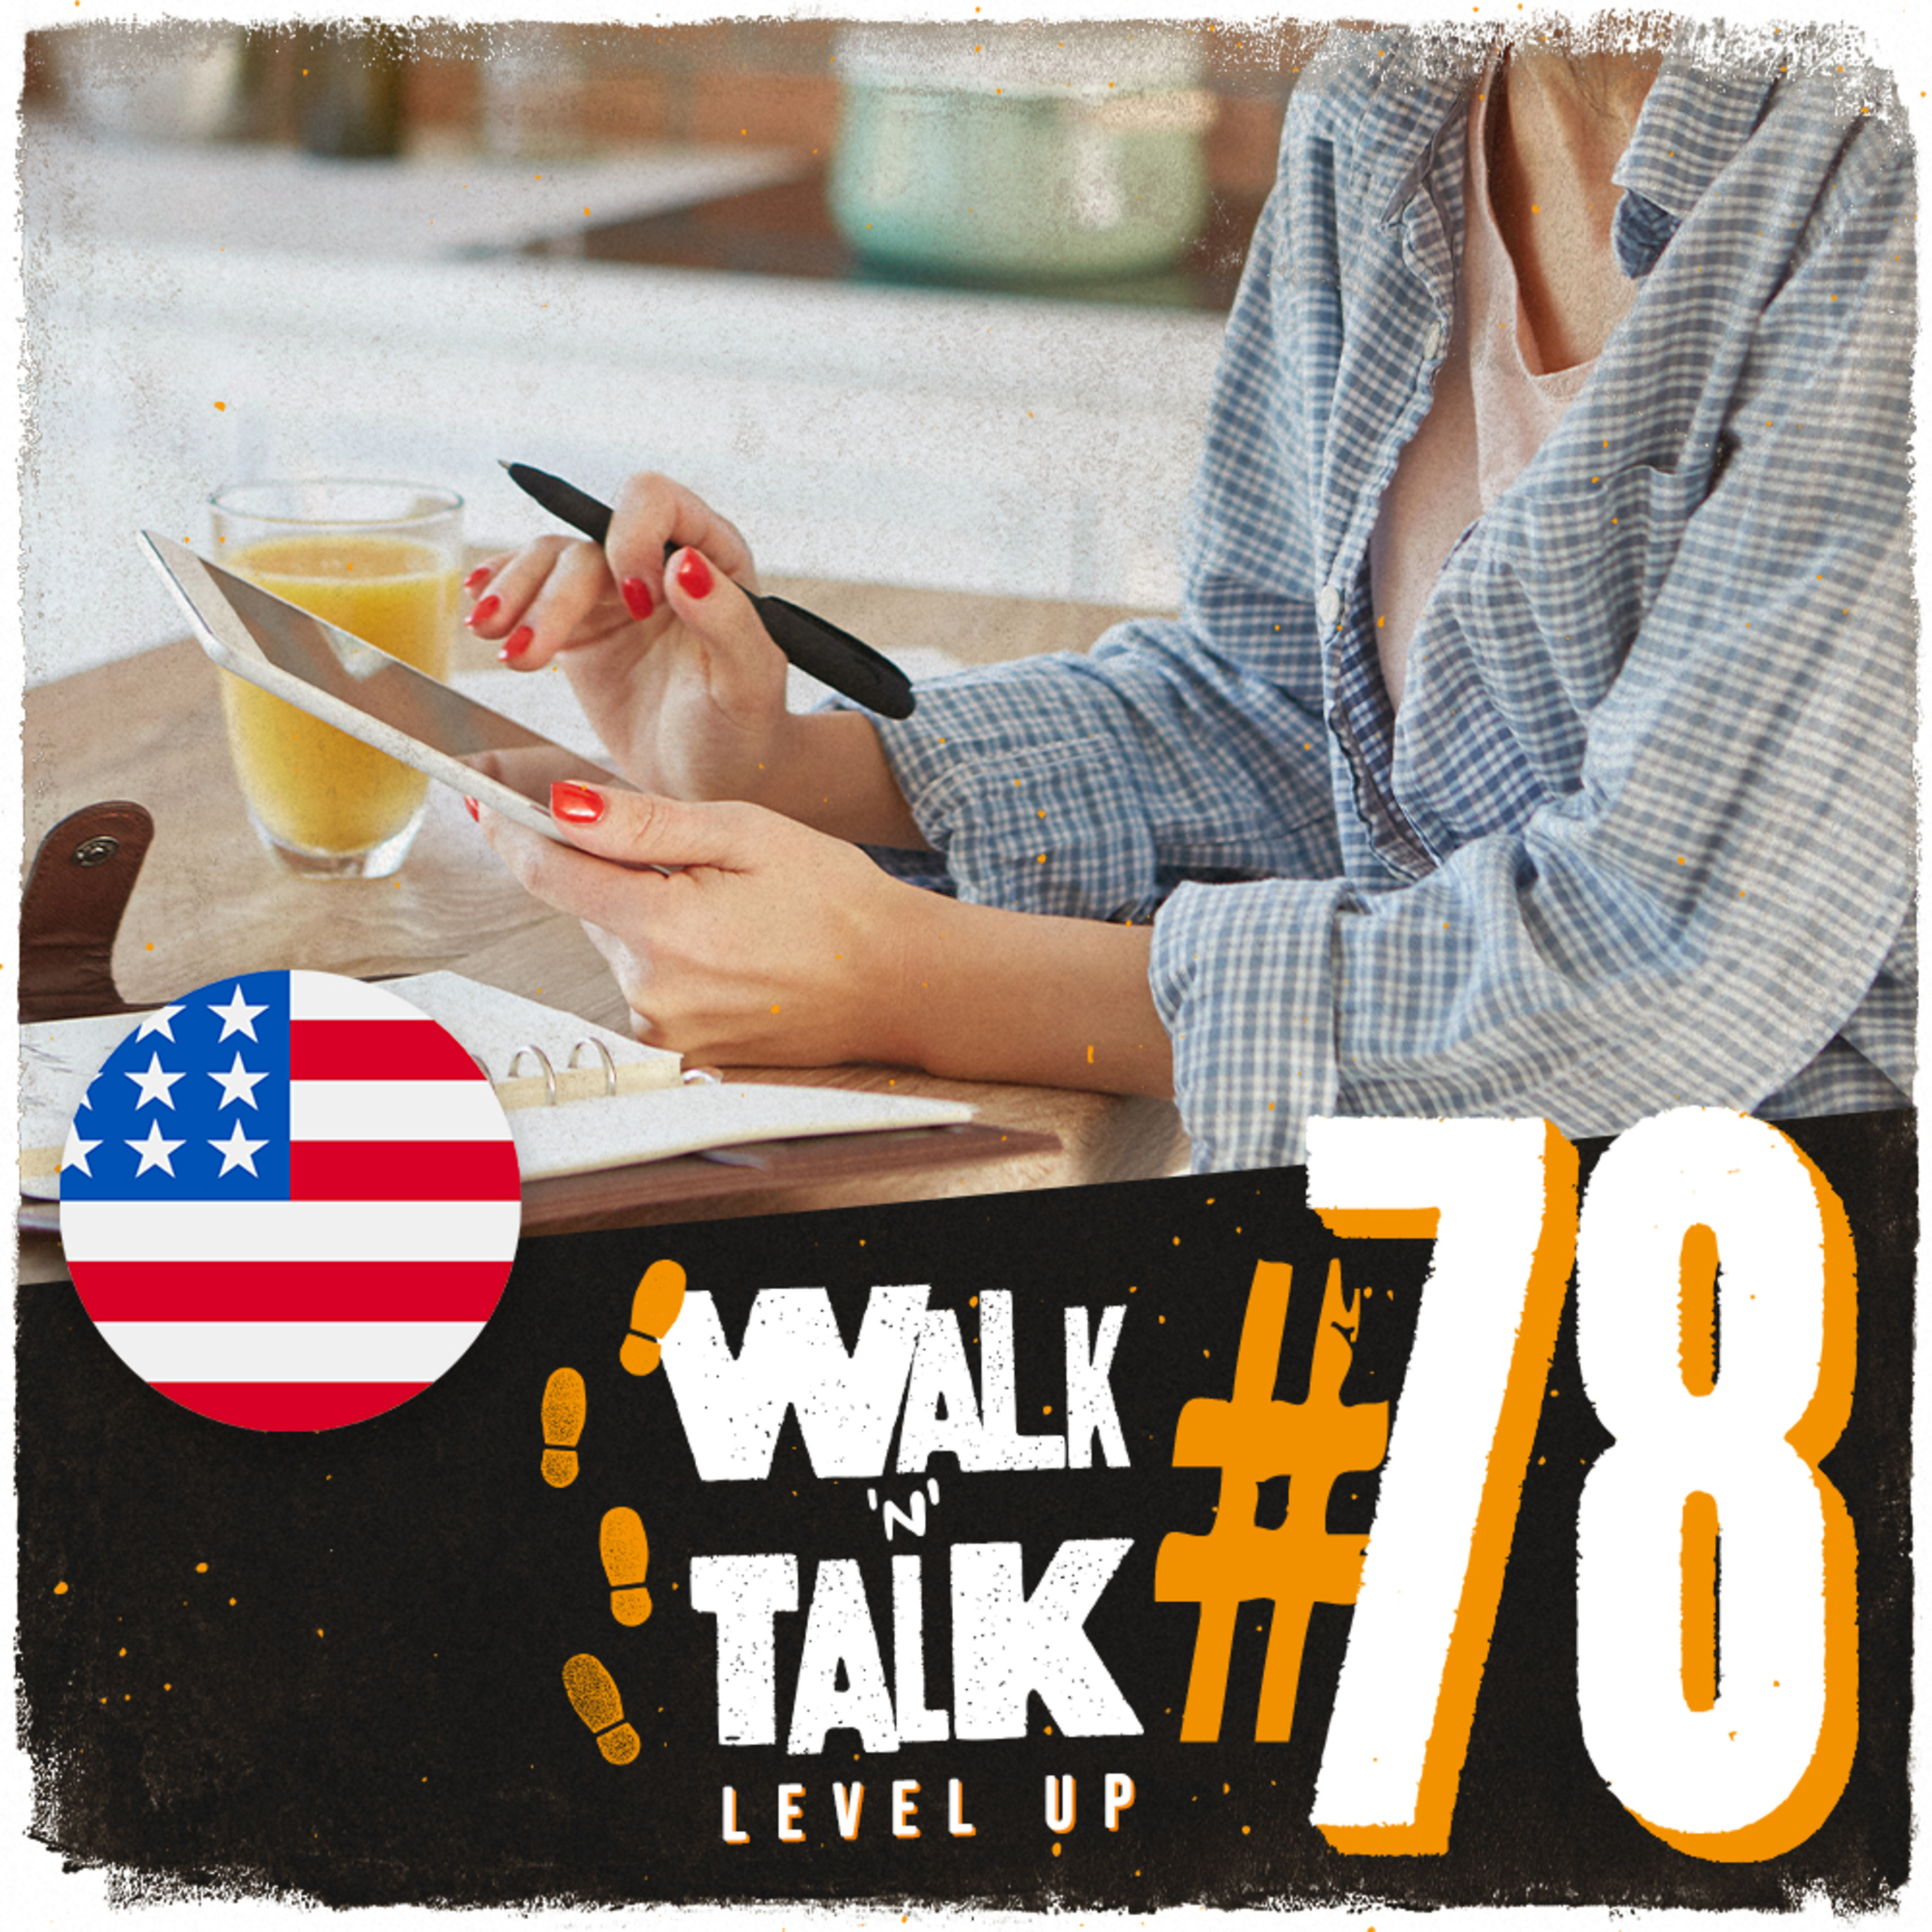 Walk 'n' Talk Level Up #78 - Don't bite off more than you can chew!